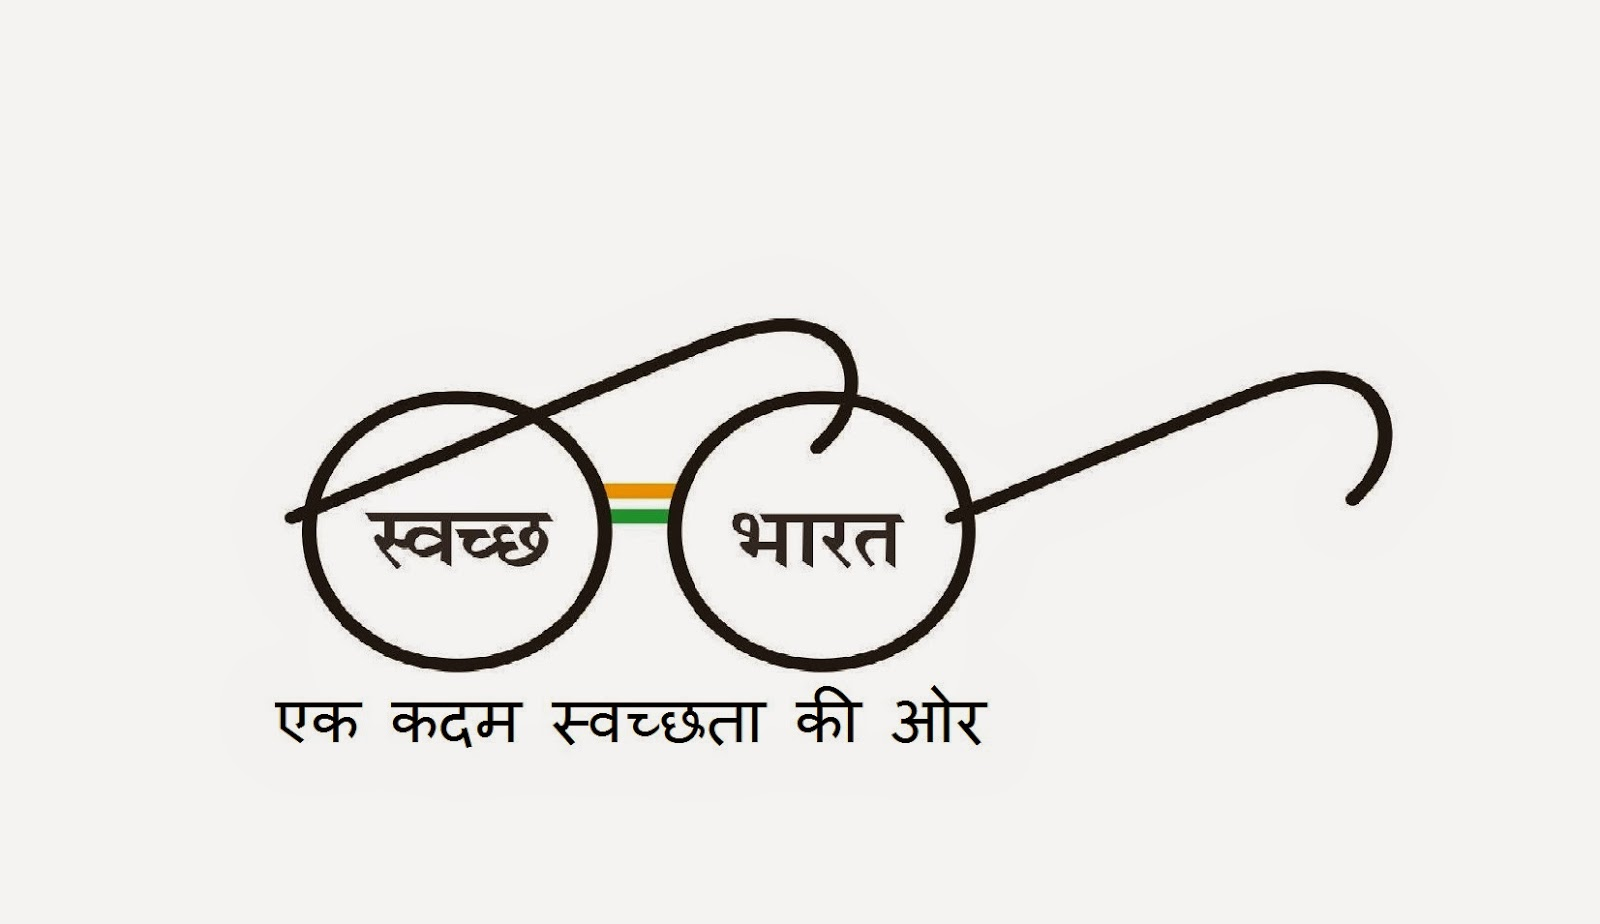 swachh bharat in addition the schools will organise film shows model activities on hygiene essay painting and other competitions role plays etc to reiterate the